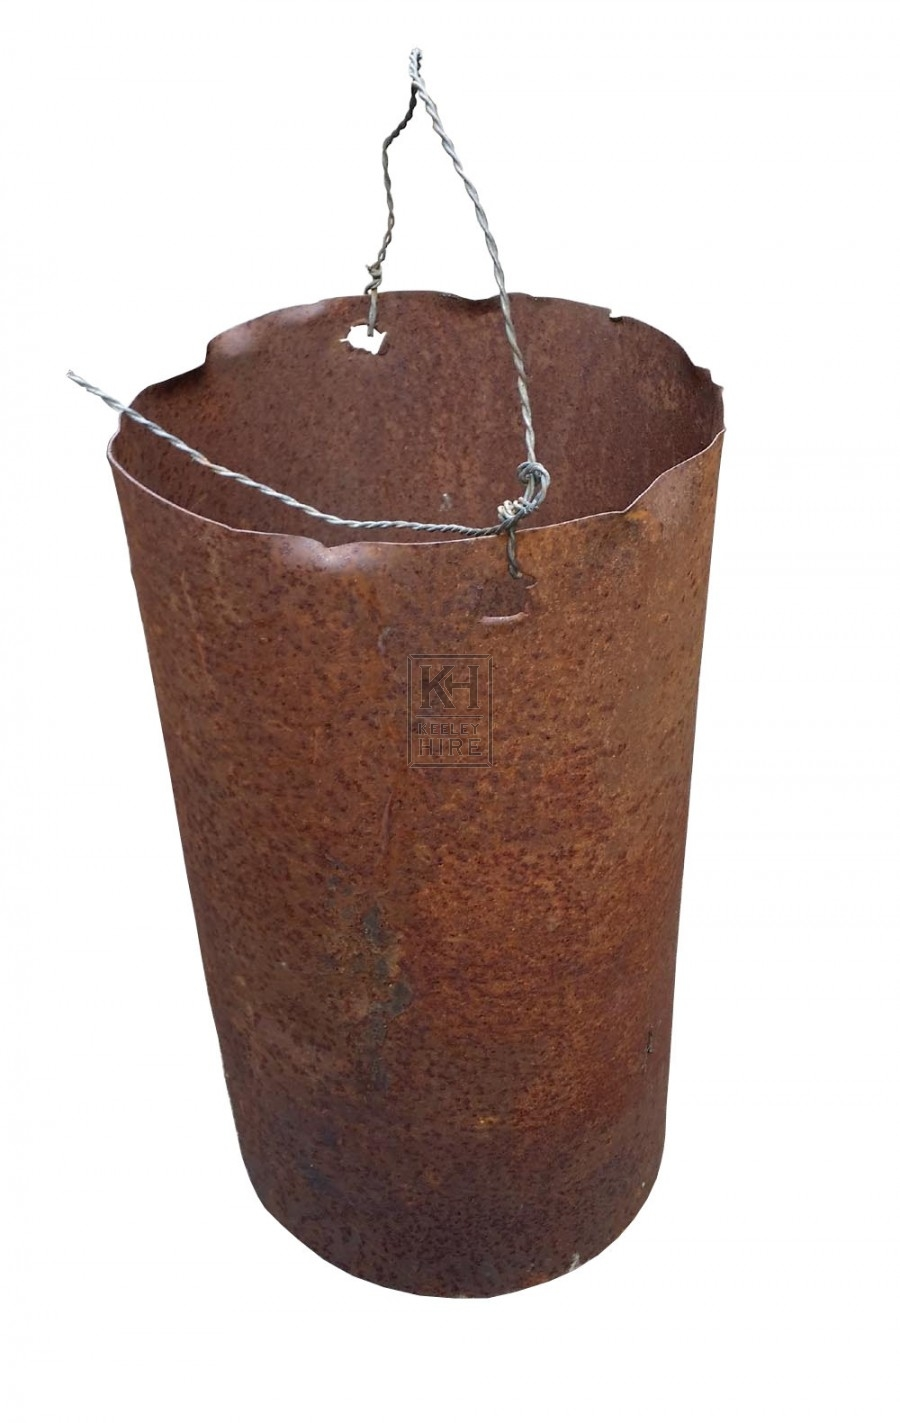 Rusty metal drum